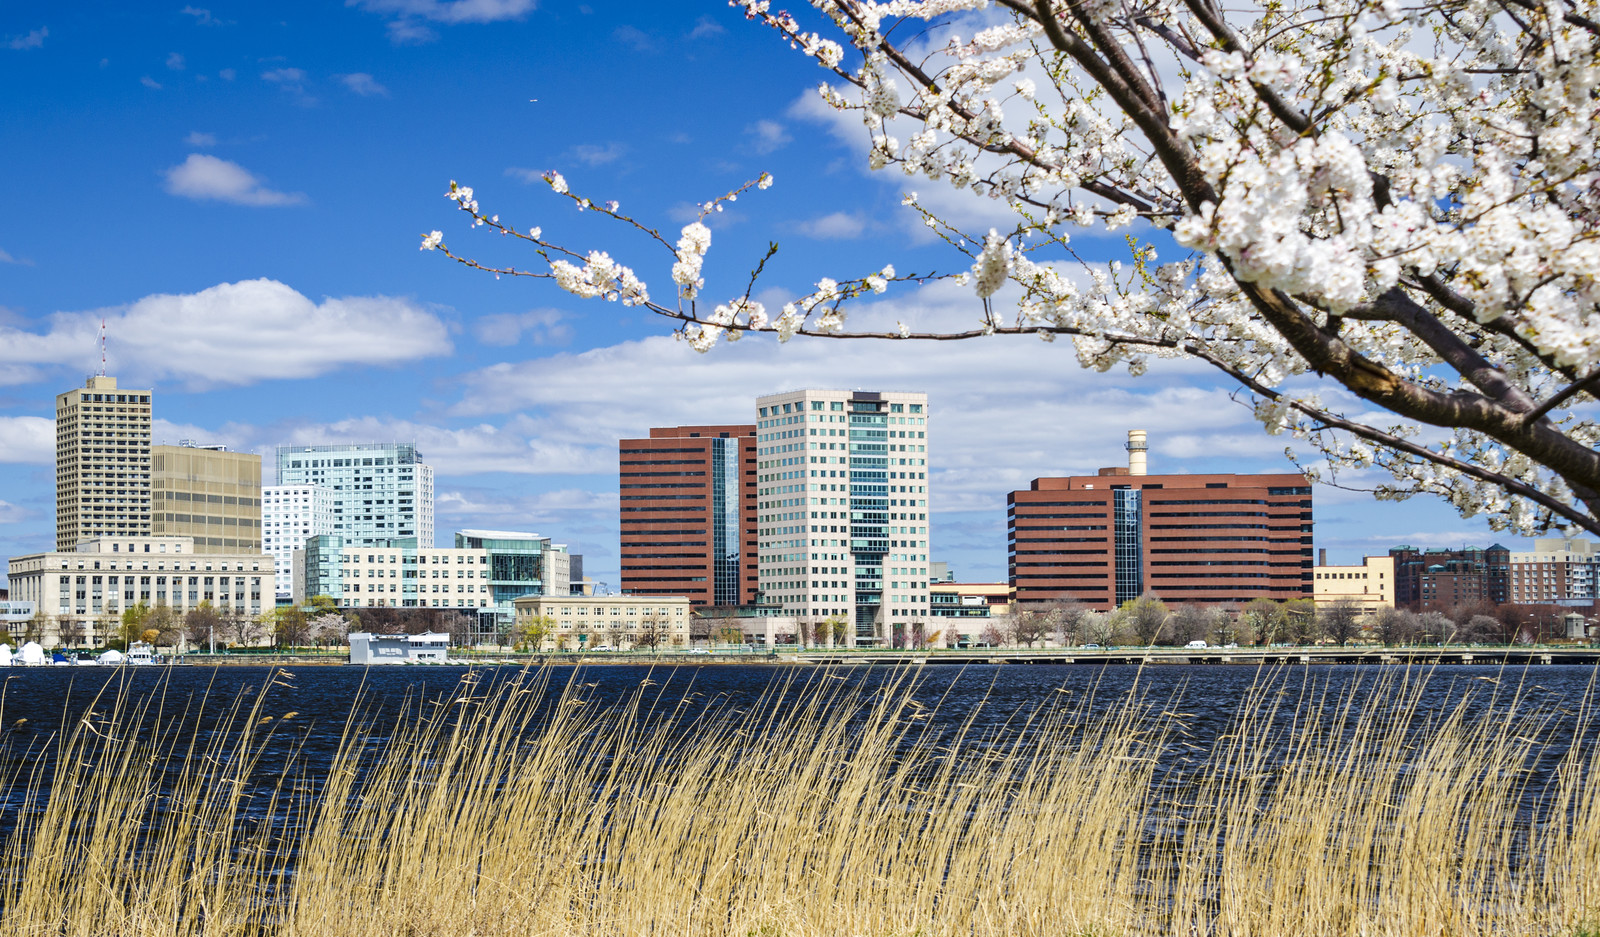 Cambridge, Massachusetts skyline in the spring, photo taken on the other side of the Charles River near a cherry blossom tree in early spring